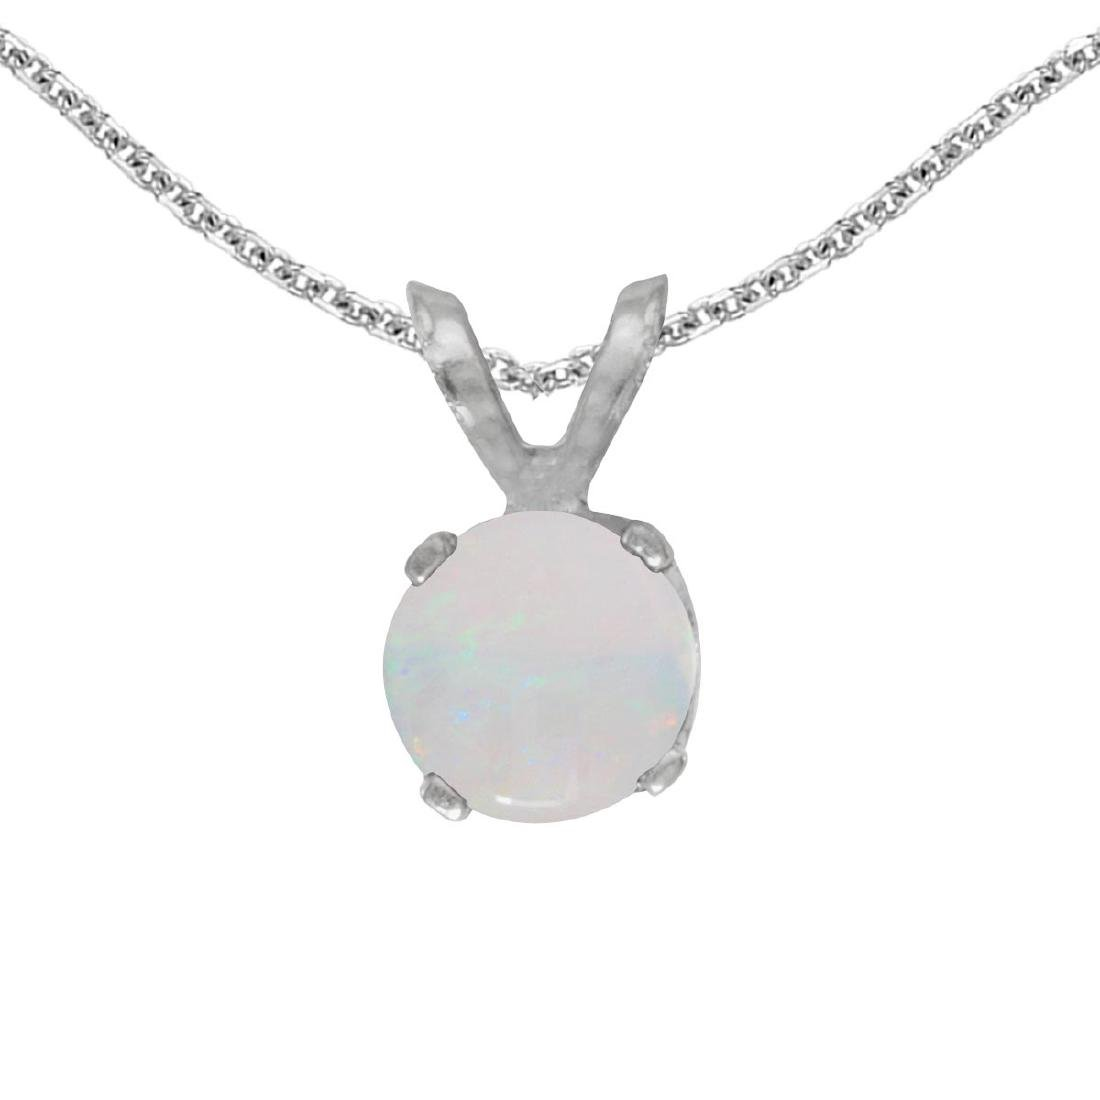 Certified 14k White Gold Round Opal Pendant 0.19 CTW